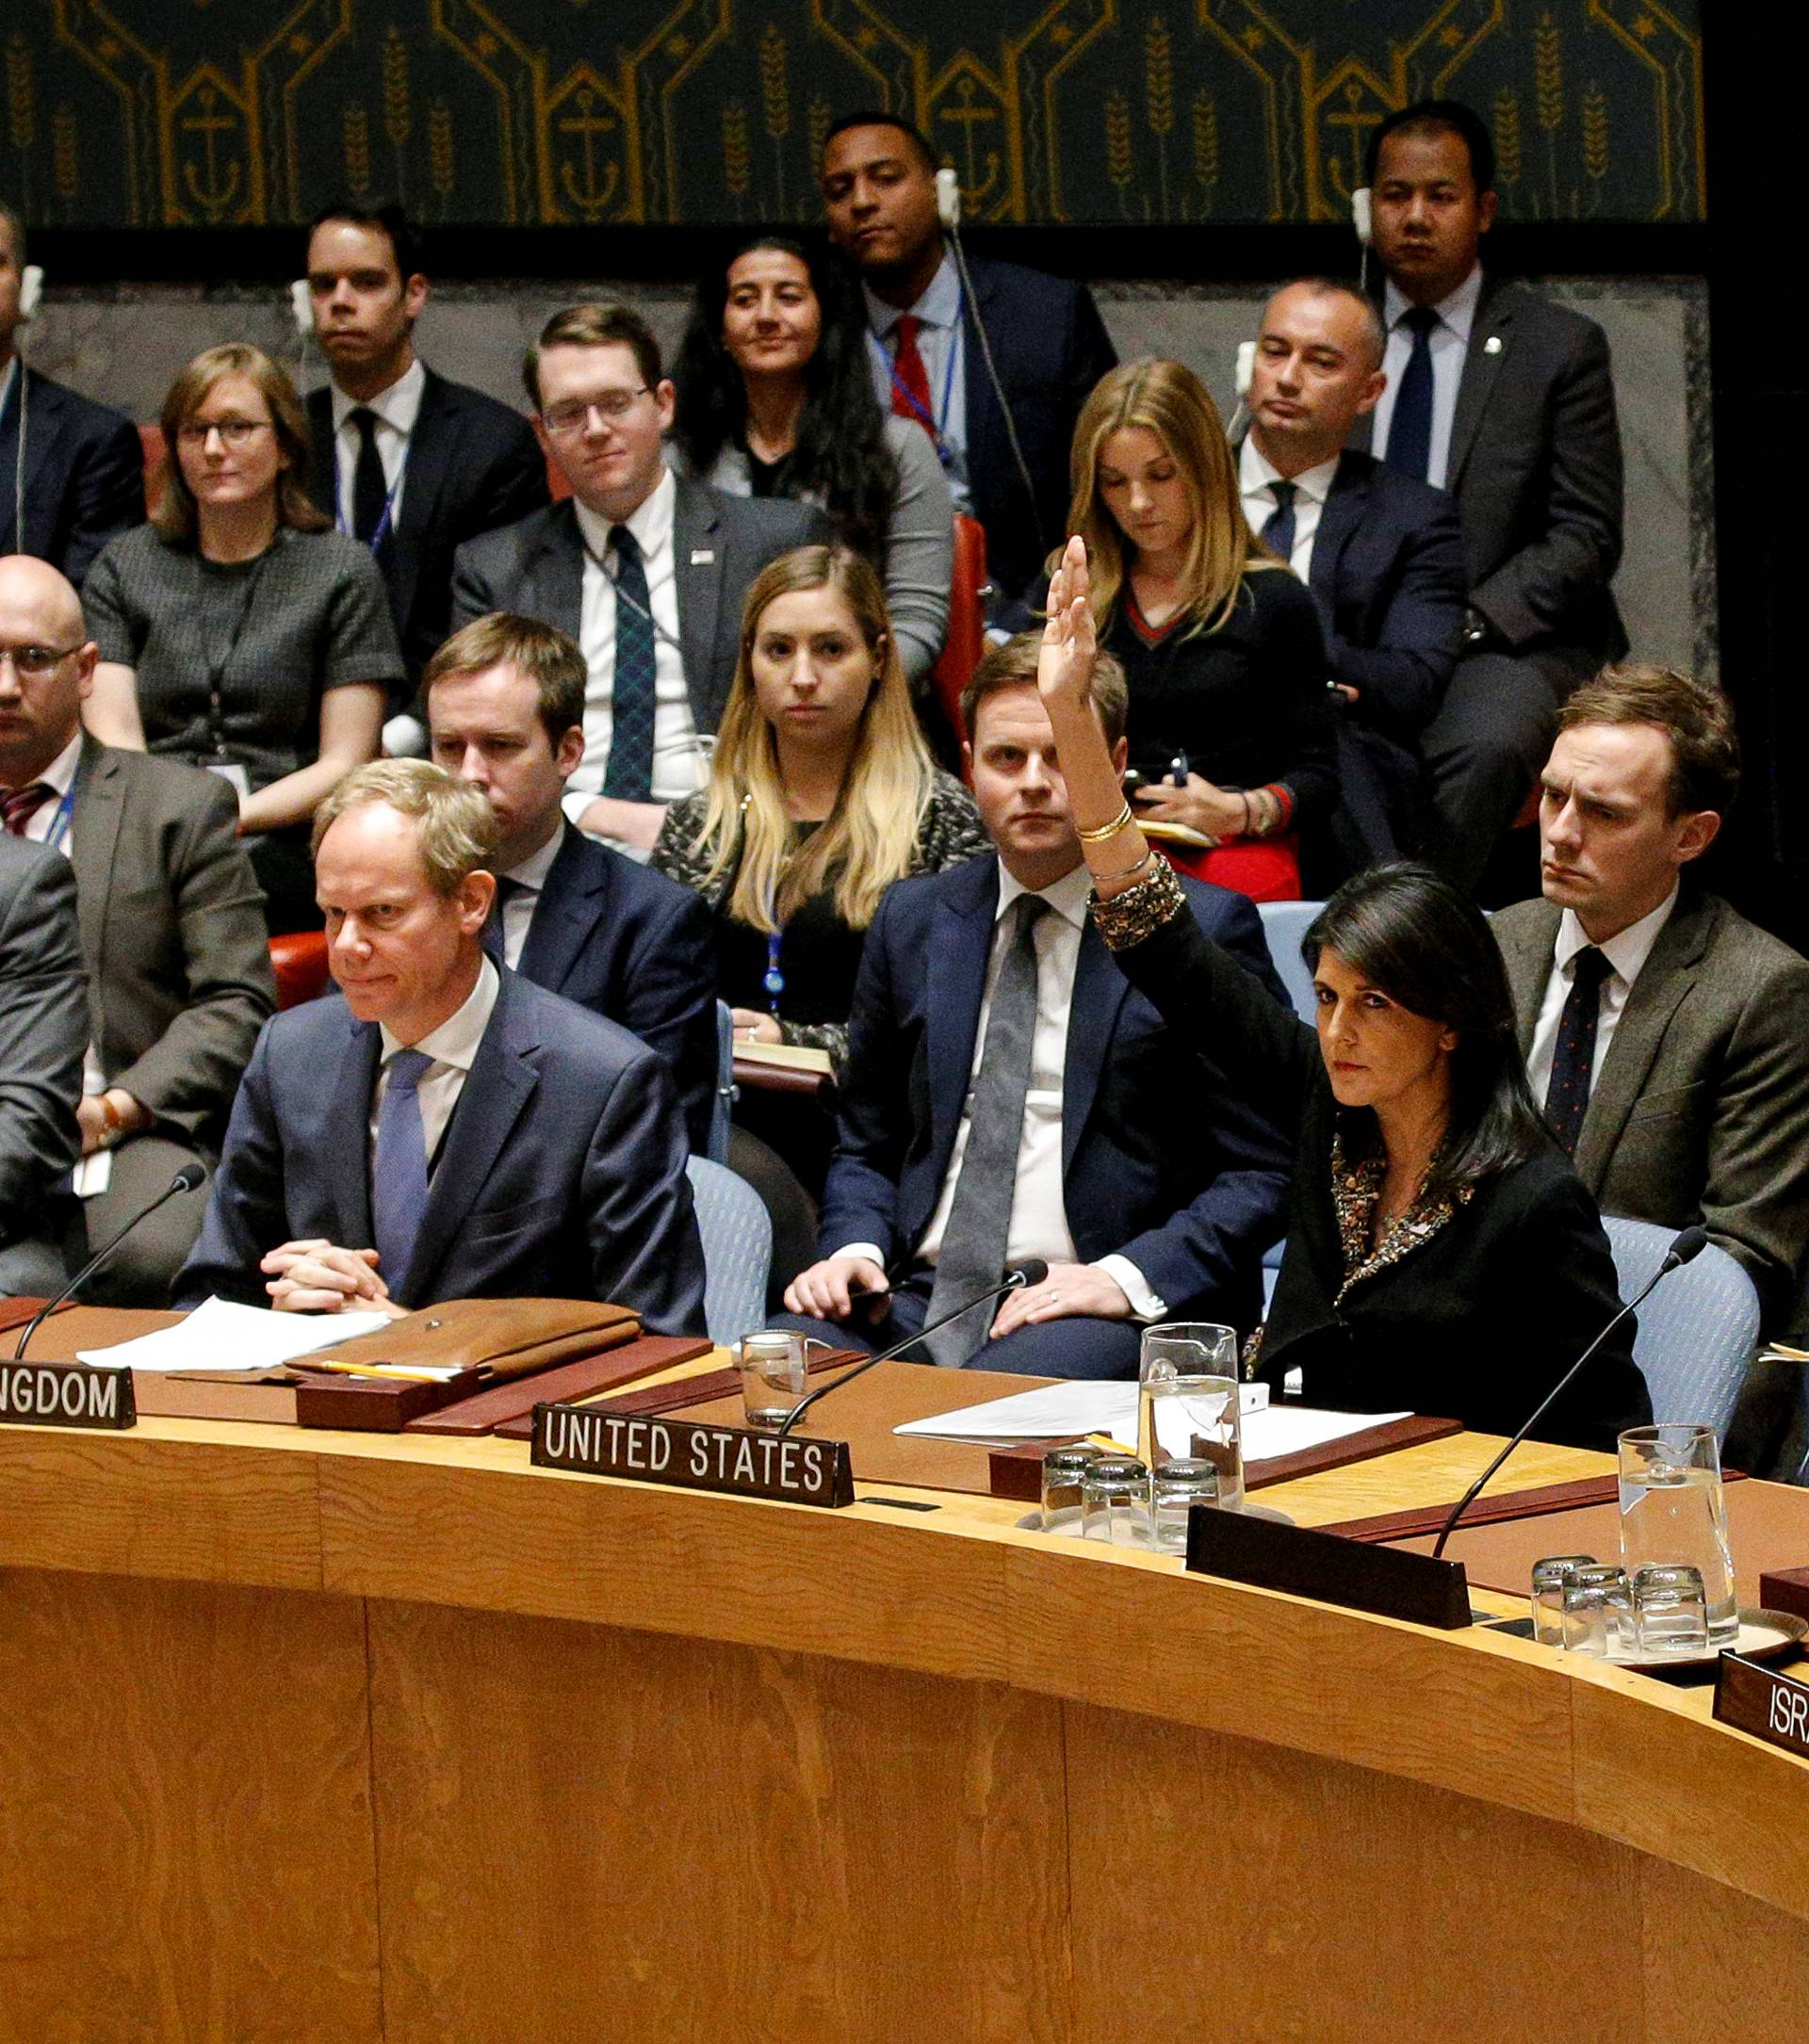 U.S. Ambassador to the United Nations Nikki Haley vetos an Egyptian-drafted resolution regarding recent decisions concerning the status of Jerusalem, during the United Nations Security Council meeting in New York